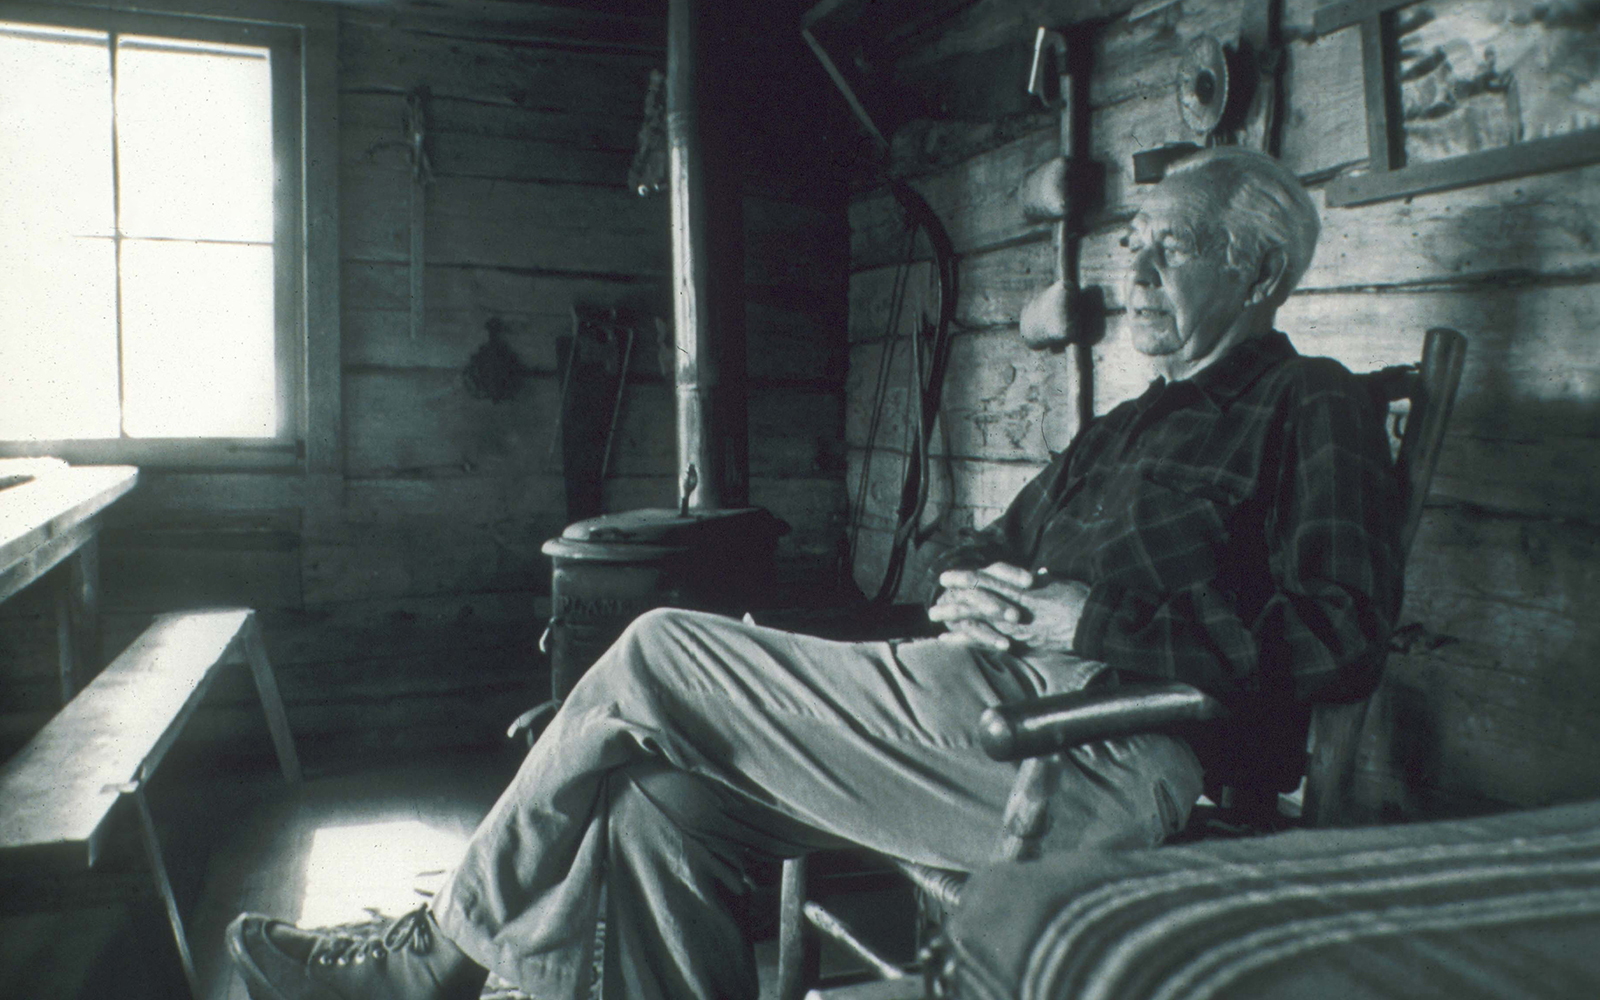 Sigurd Olson sitting on a porch